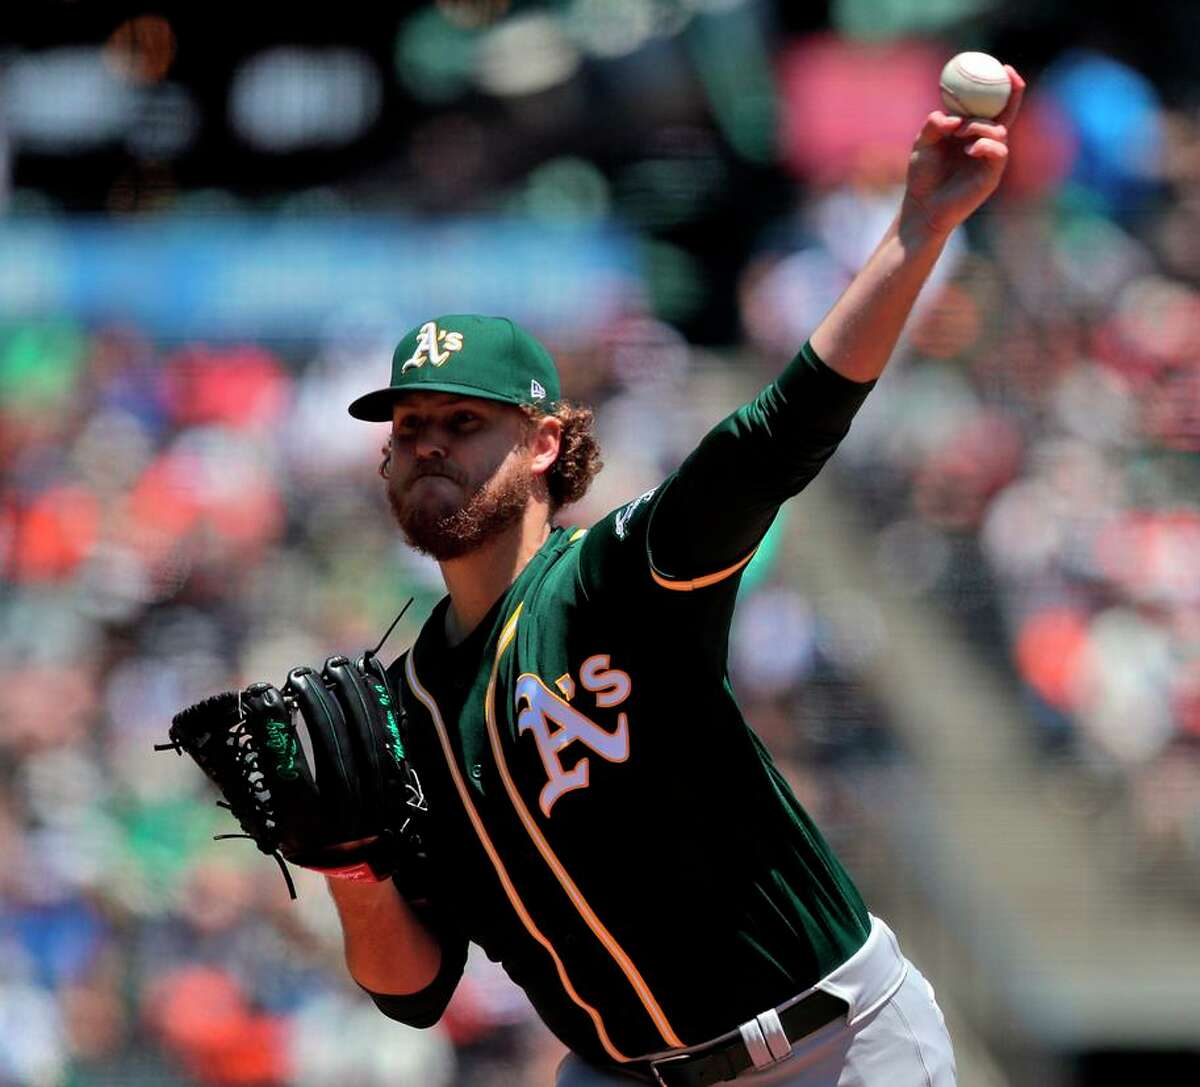 Cole Irvin threw 71 of his 100 pitches for strikes in his win over the Giants Sunday at Oracle Park in San Francisco.